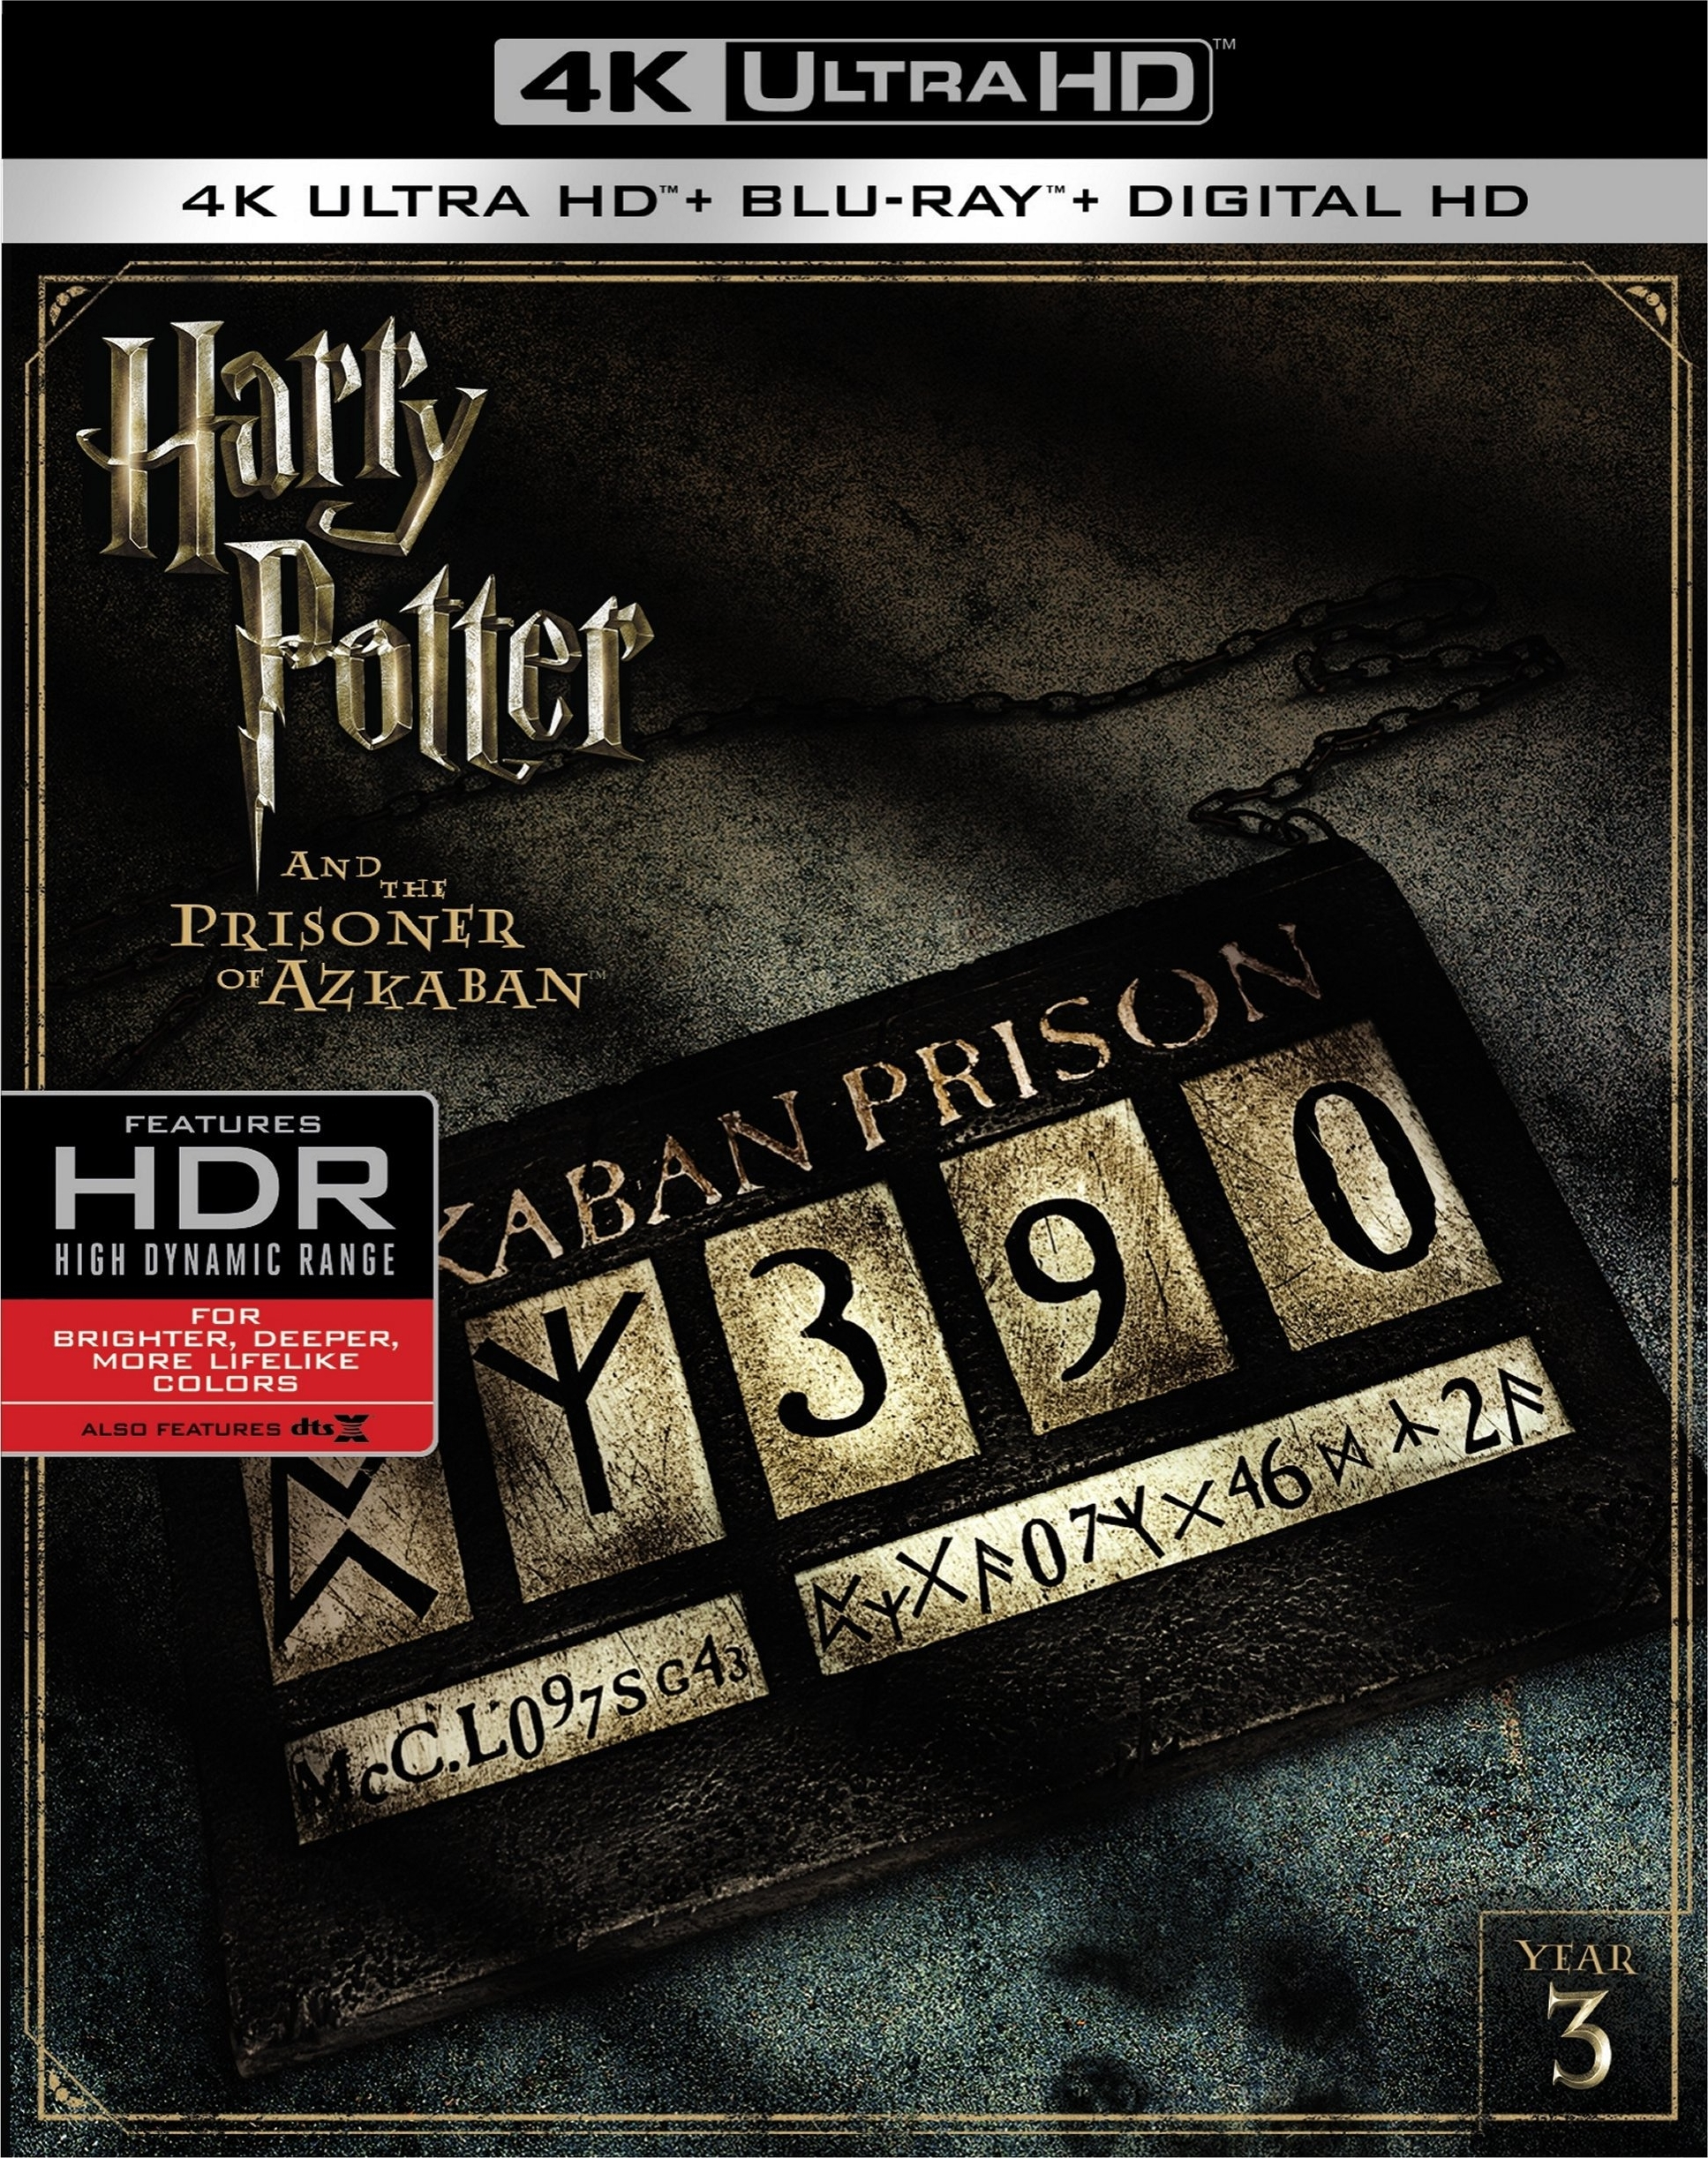 Harry Potter and the Prisoner of Azkaban 4K (2004) UHD Ultra HD Blu-ray